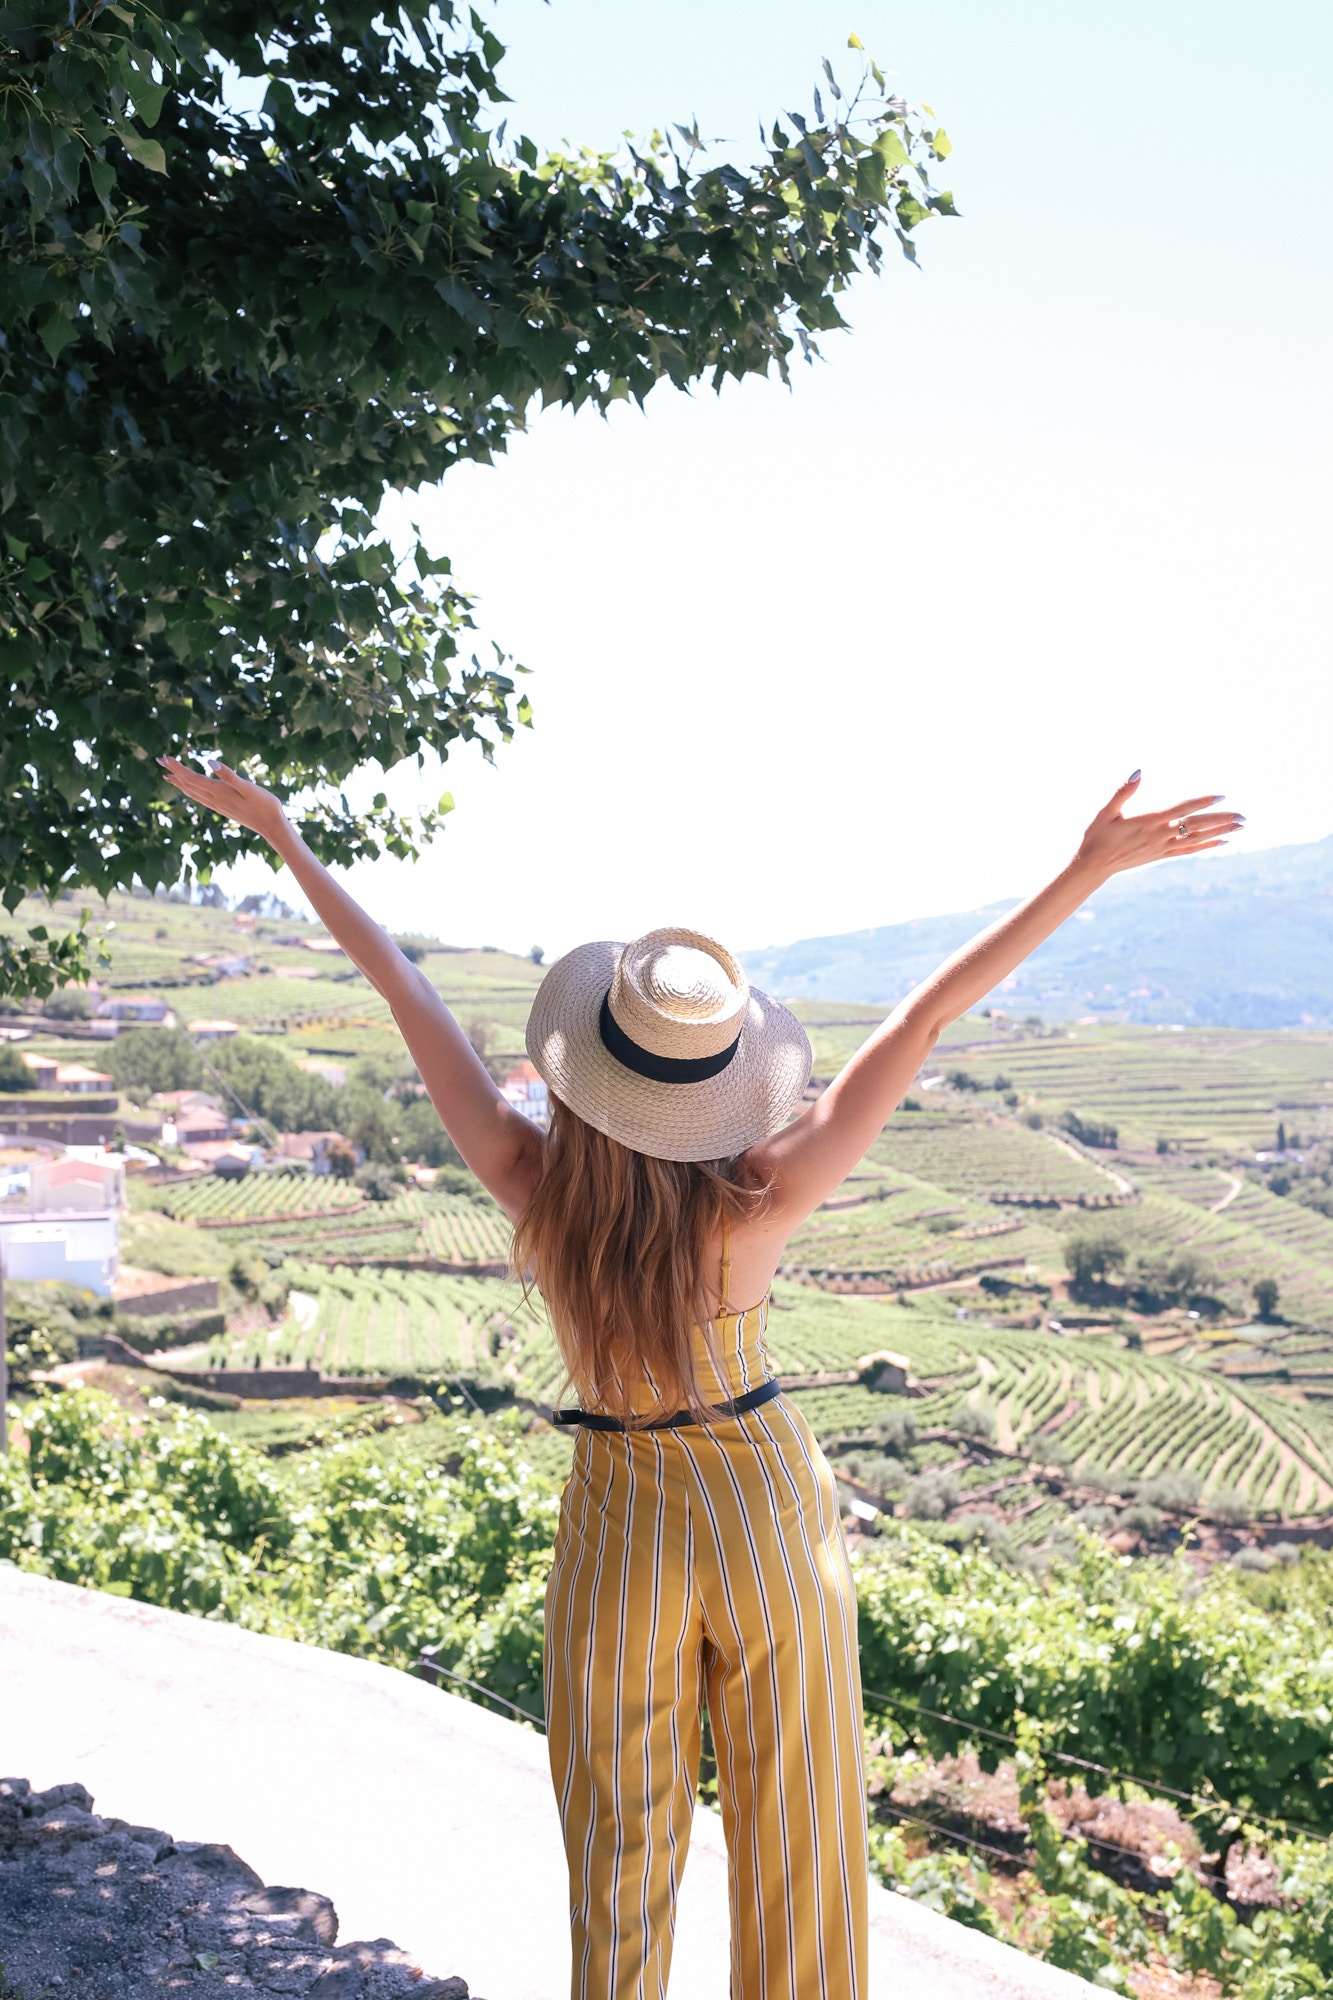 winery tours in the Douro Valley